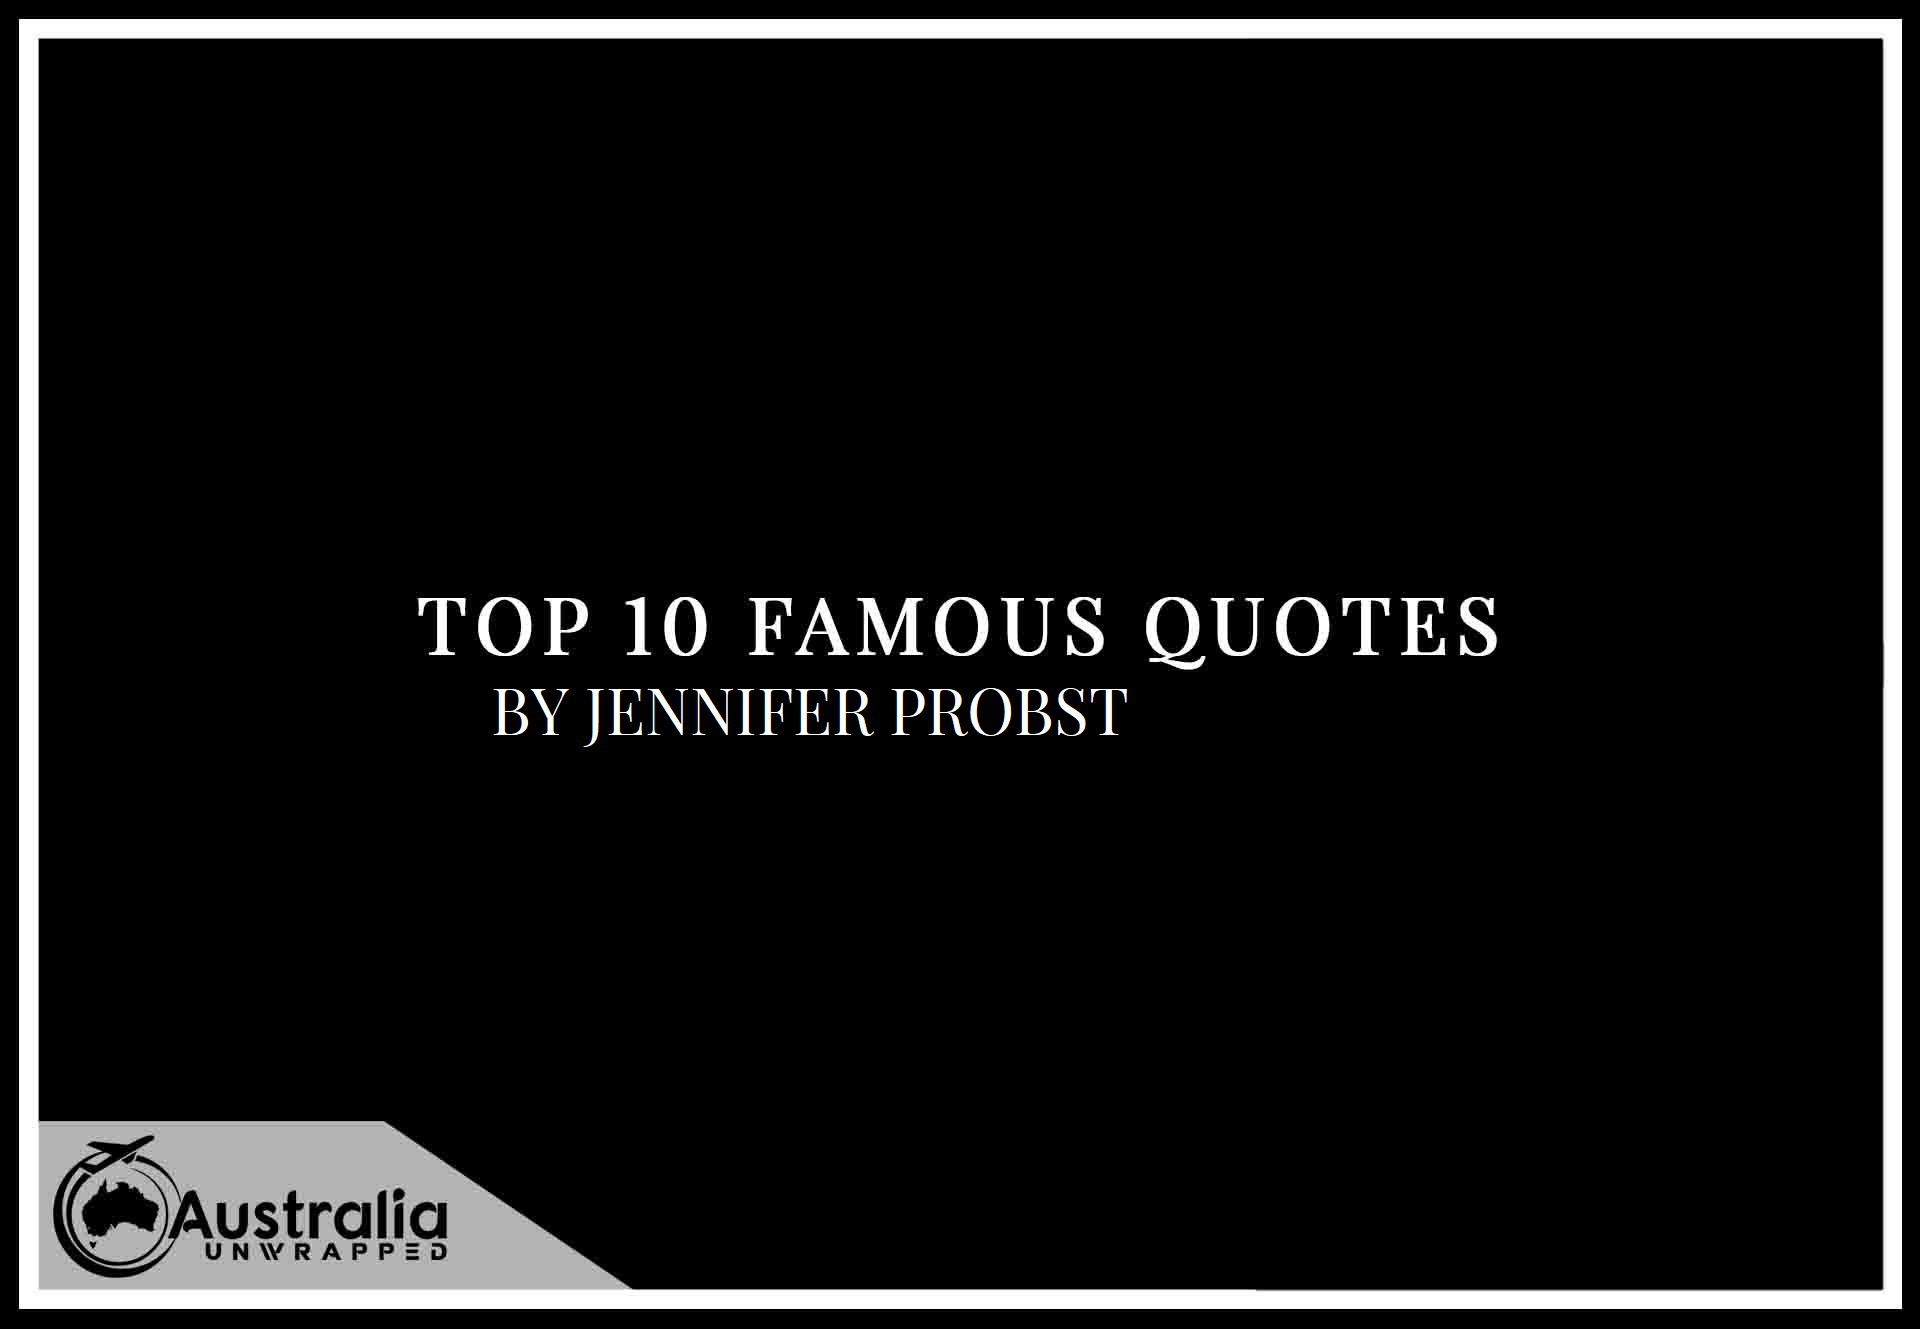 Top 10 Famous Quotes by Author Jennifer Probst